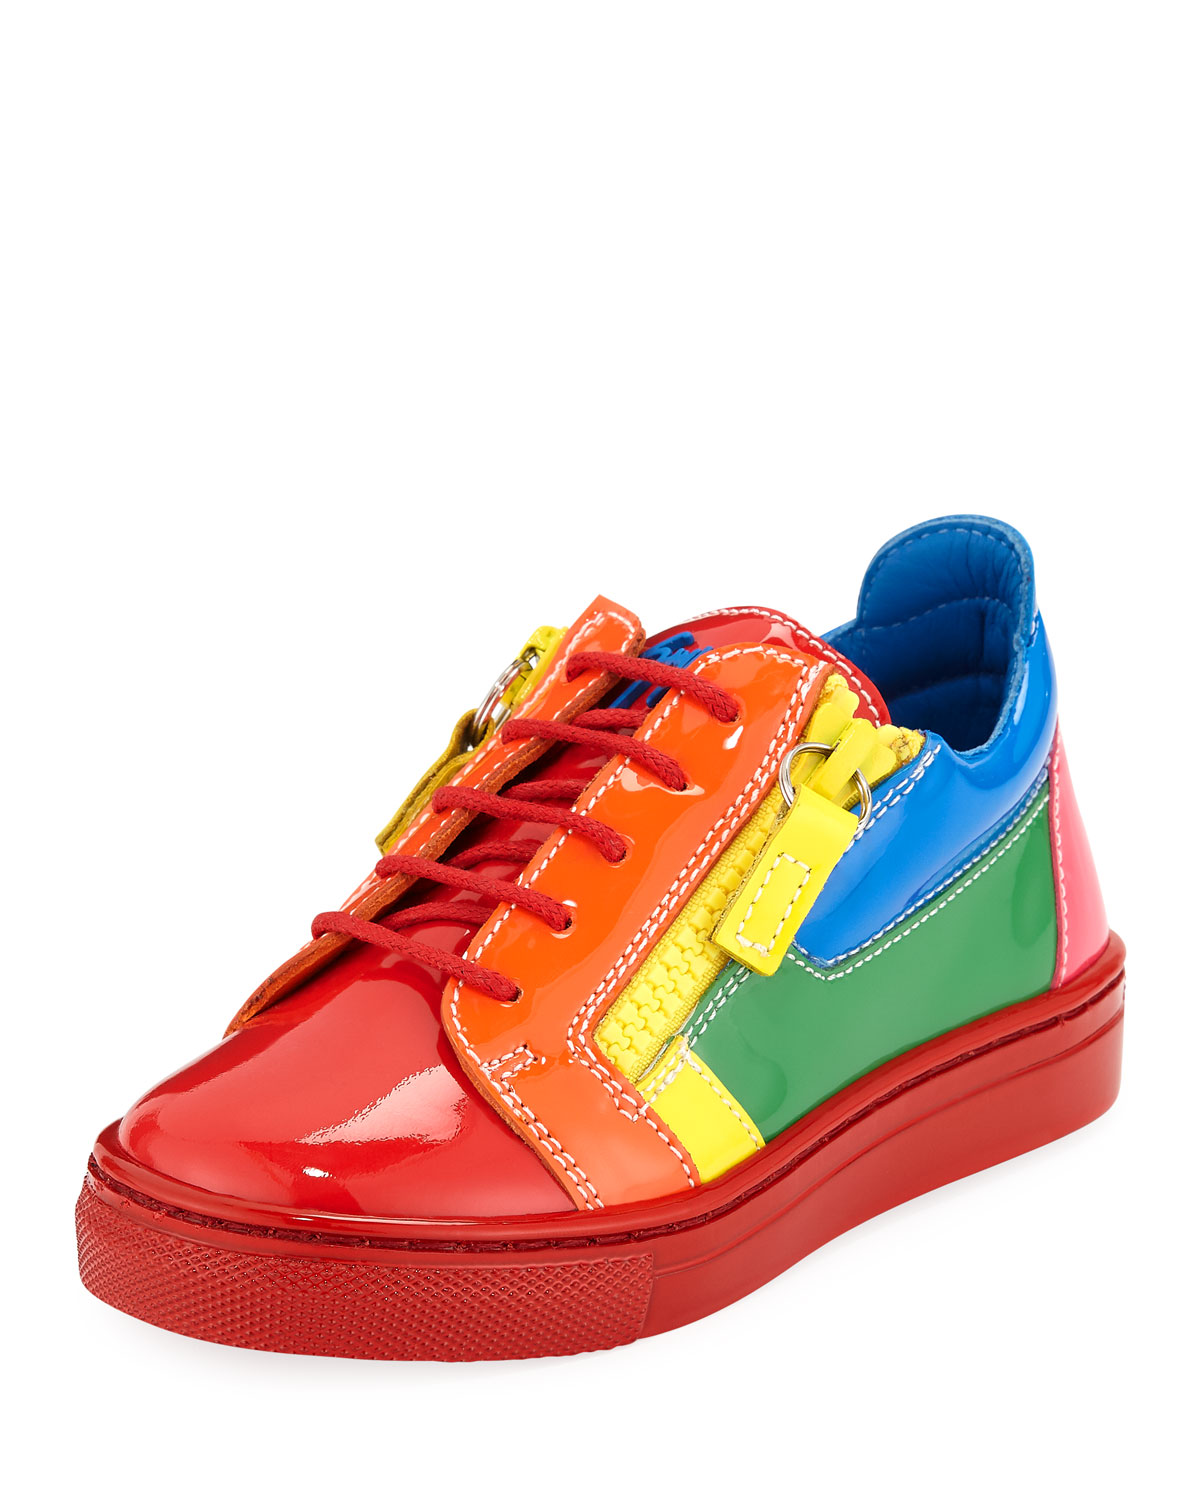 78082ff61d06 Giuseppe Zanotti Rainbow Patent Leather Low-Top Sneakers